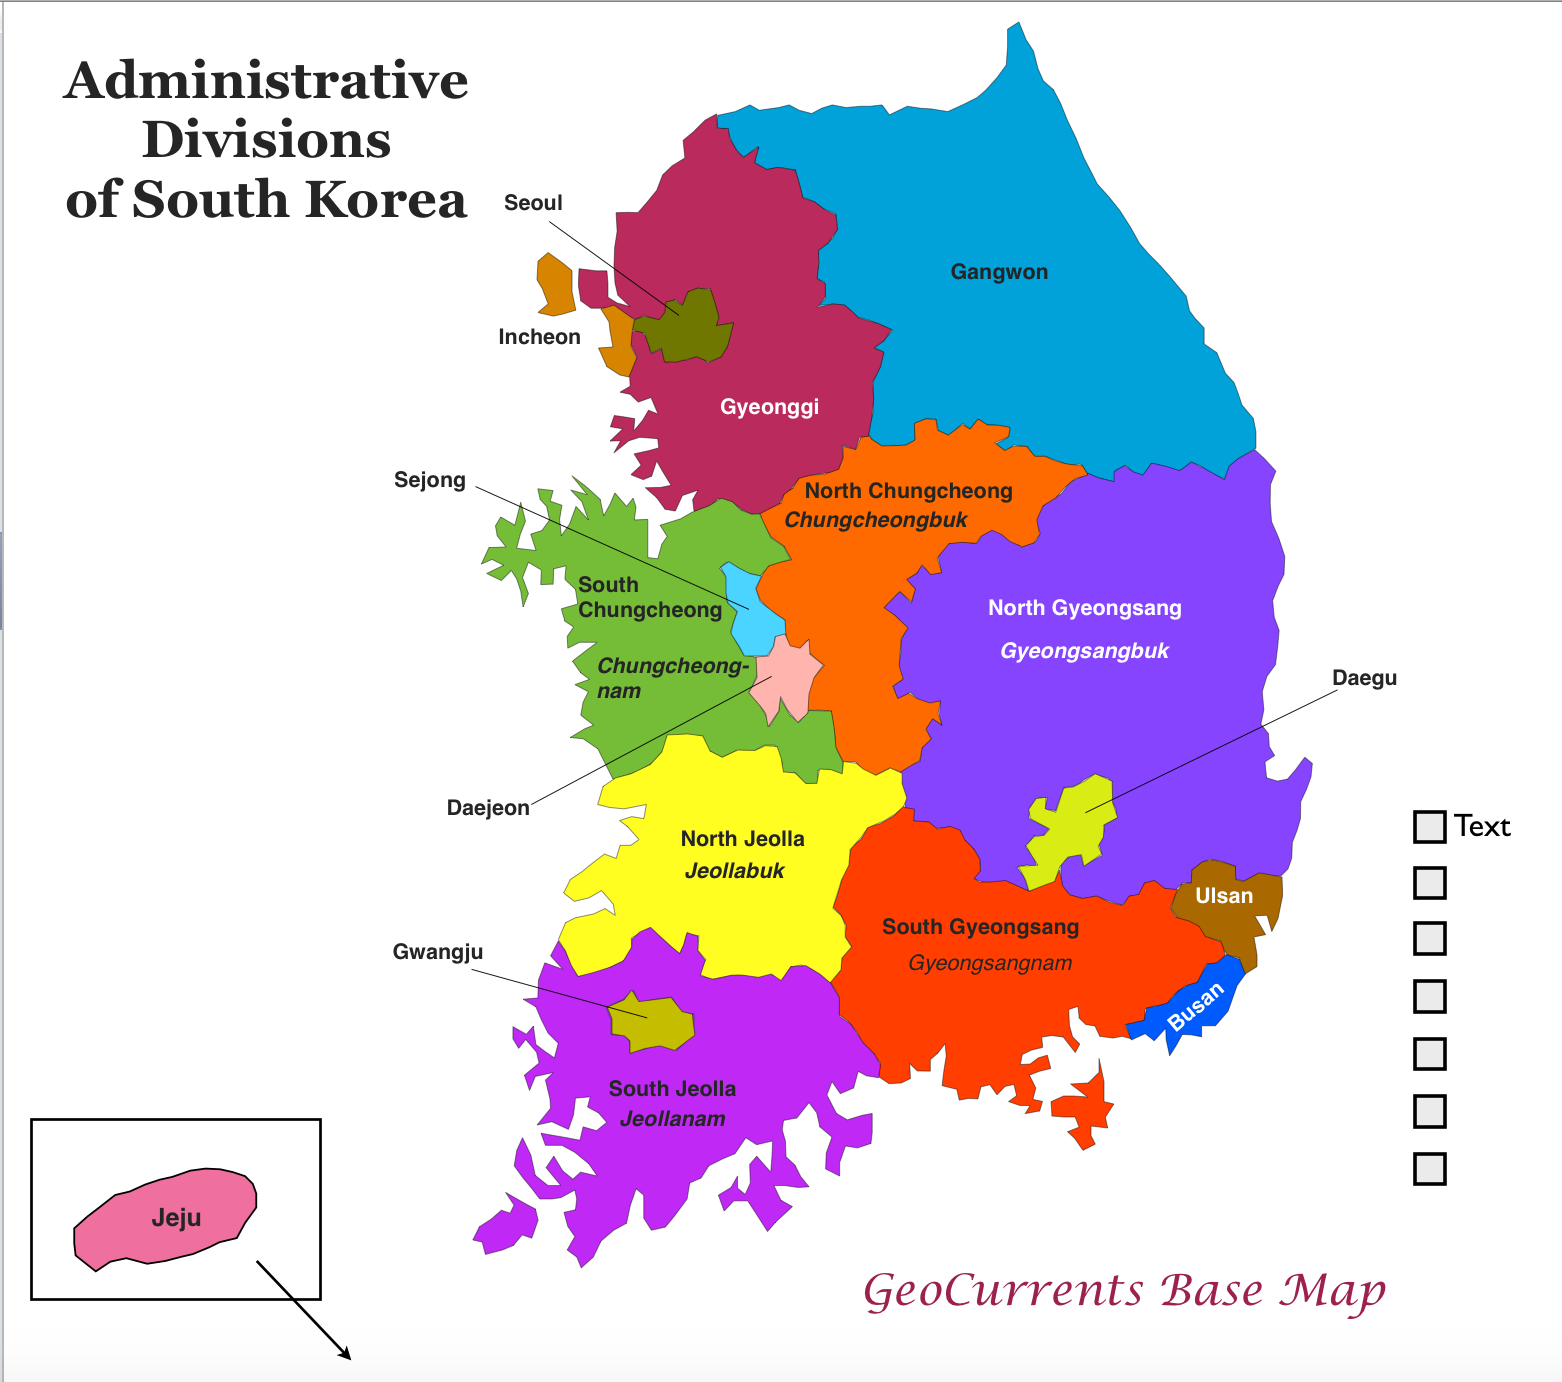 GeoCurrents Maps Of South Korea GeoCurrents - Map of south korea